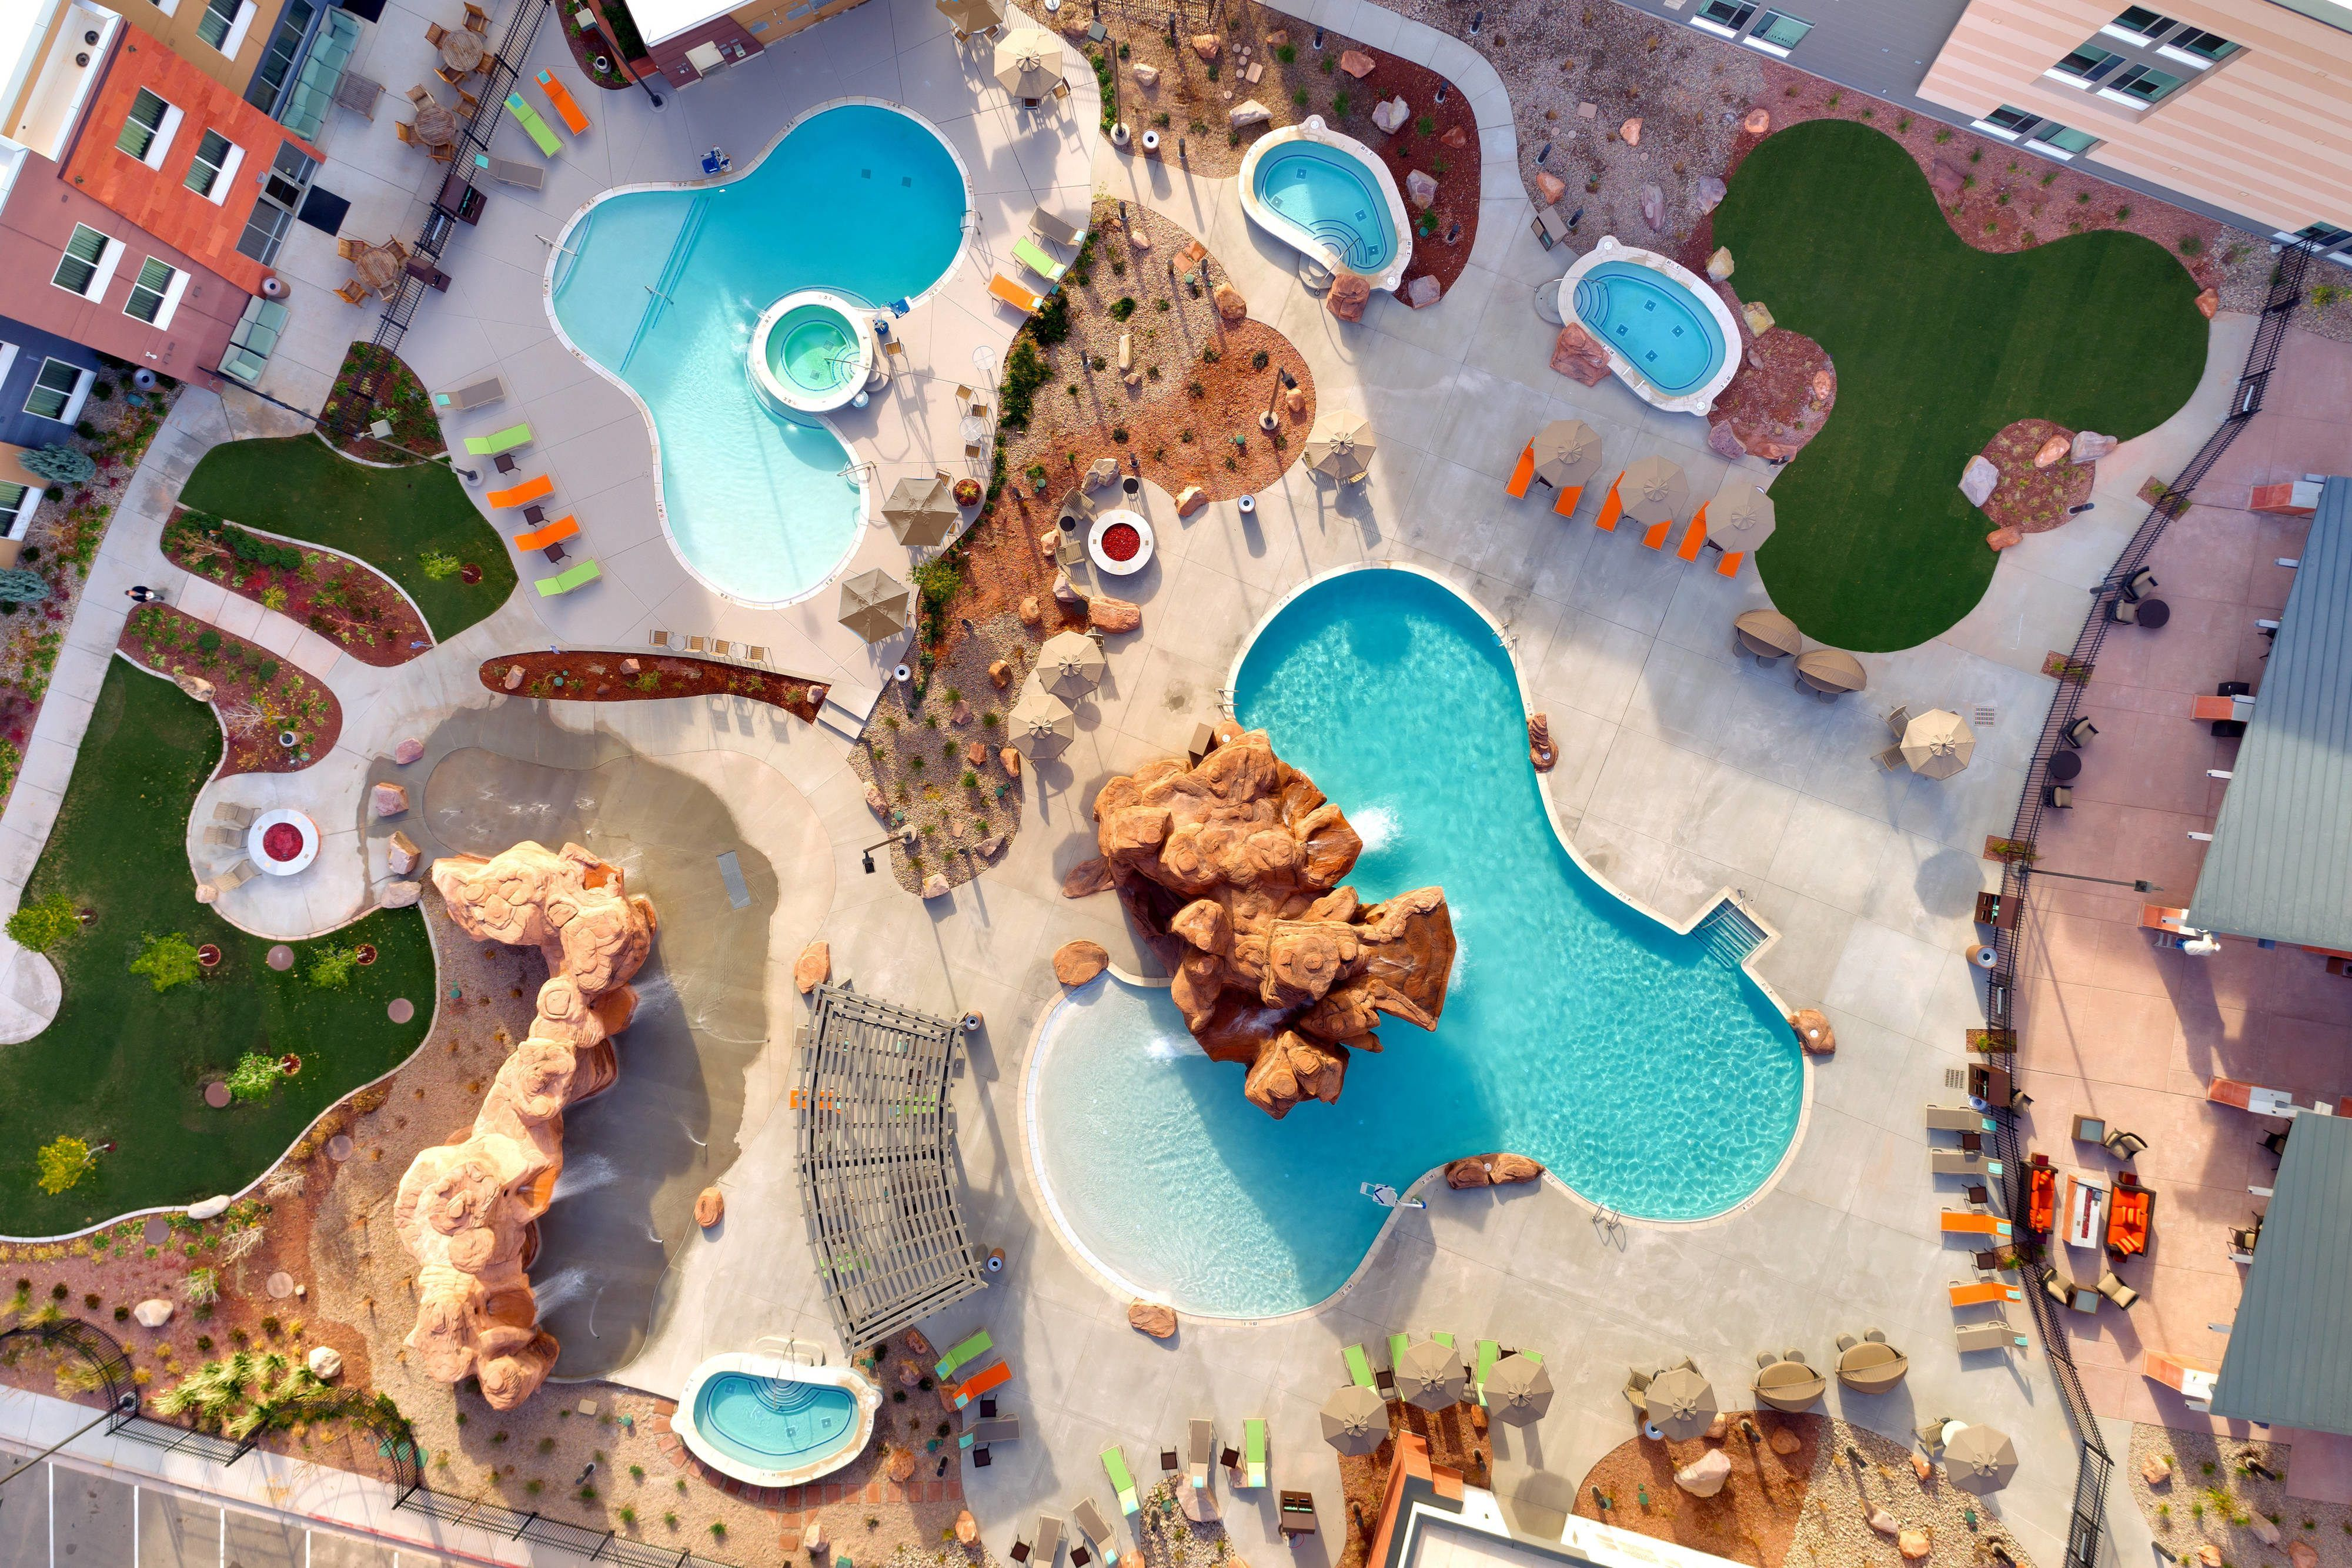 Springhill Suites Moab Pool Overview Visiting Holiday Happy Springhill Moab Suites